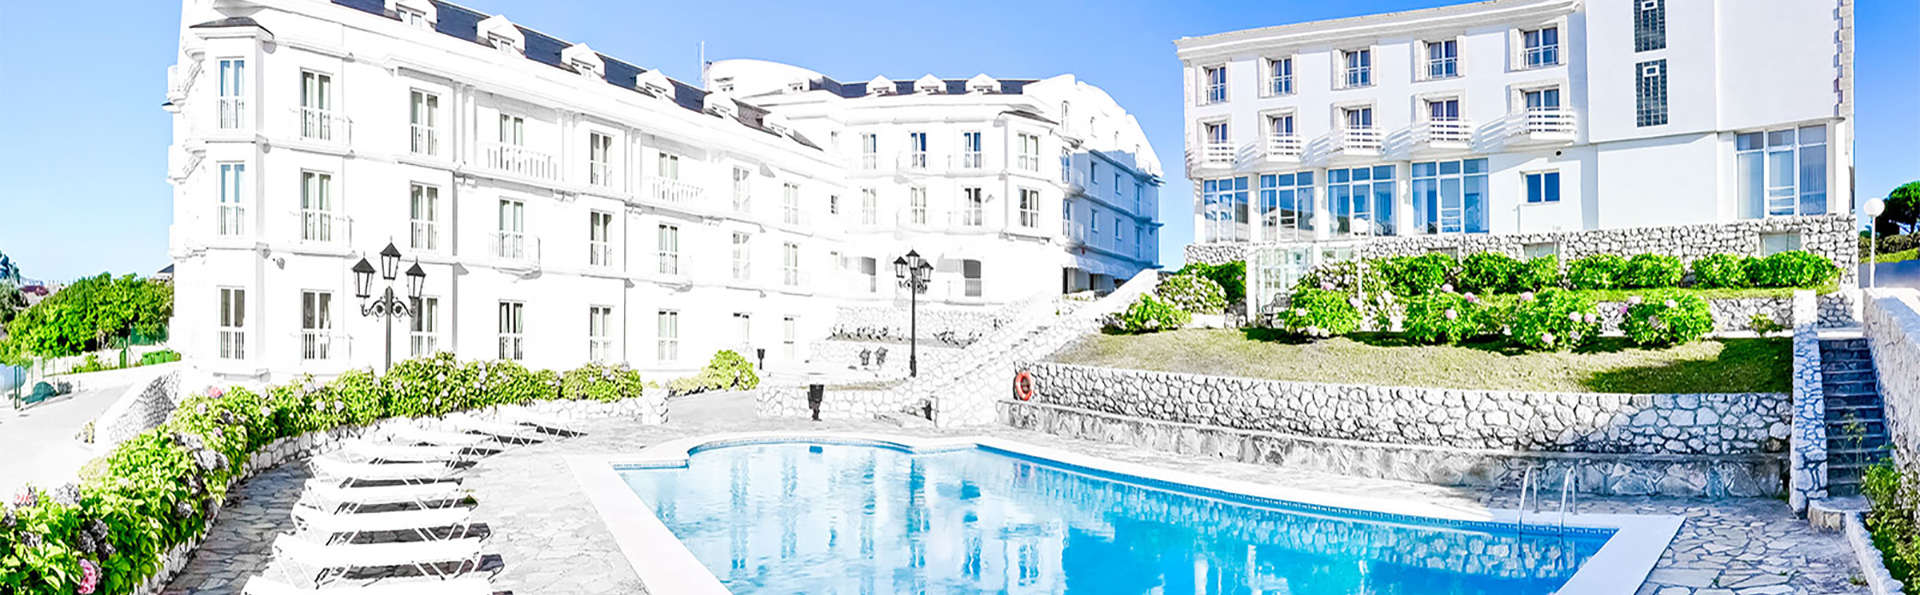 Hotel Suances - EDIT_pool1.jpg